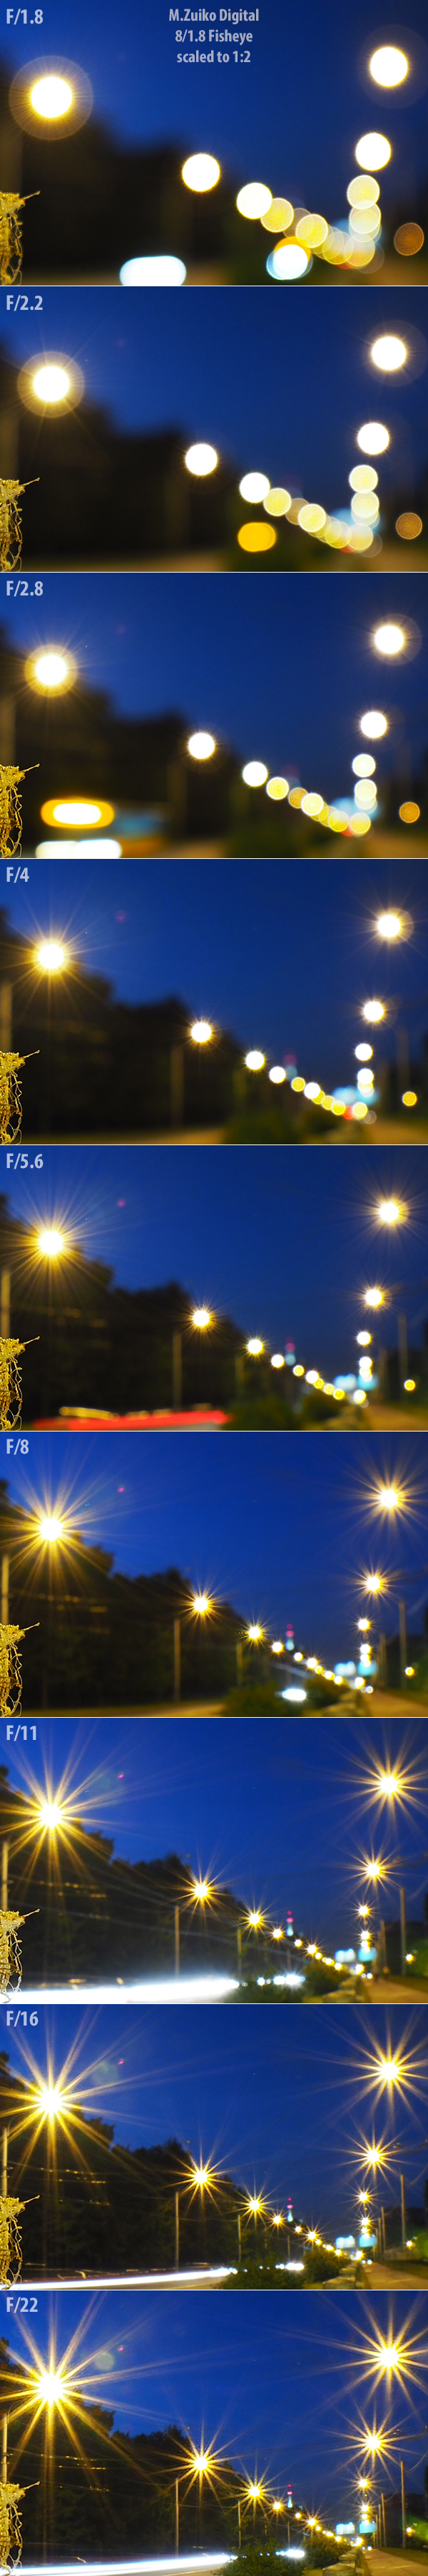 MZD-8-F1-8-bokeh-night-1-600